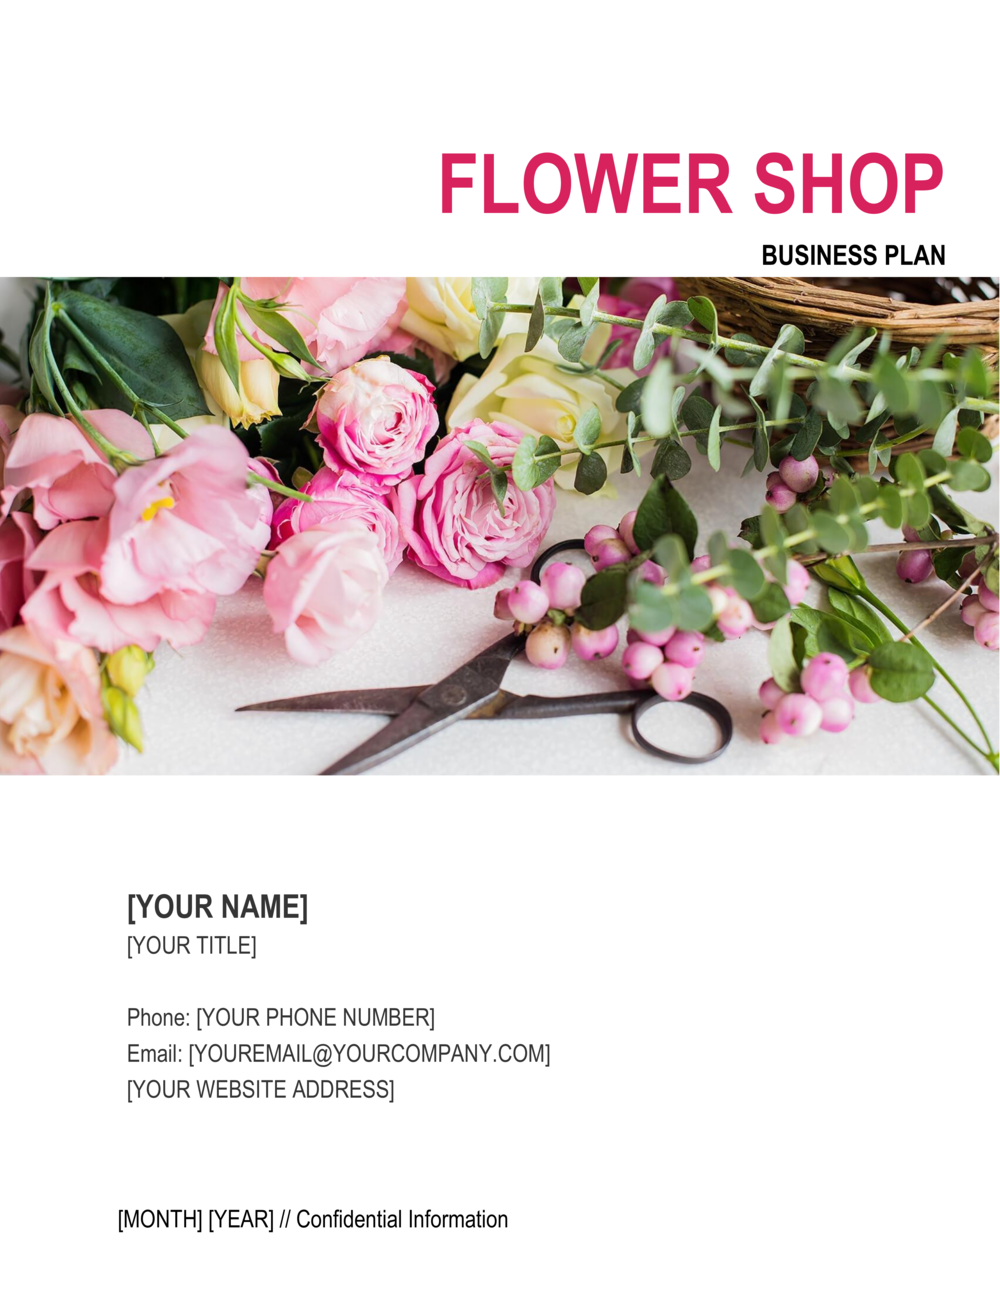 Business-in-a-Box's Flower Shop Business Plan Template